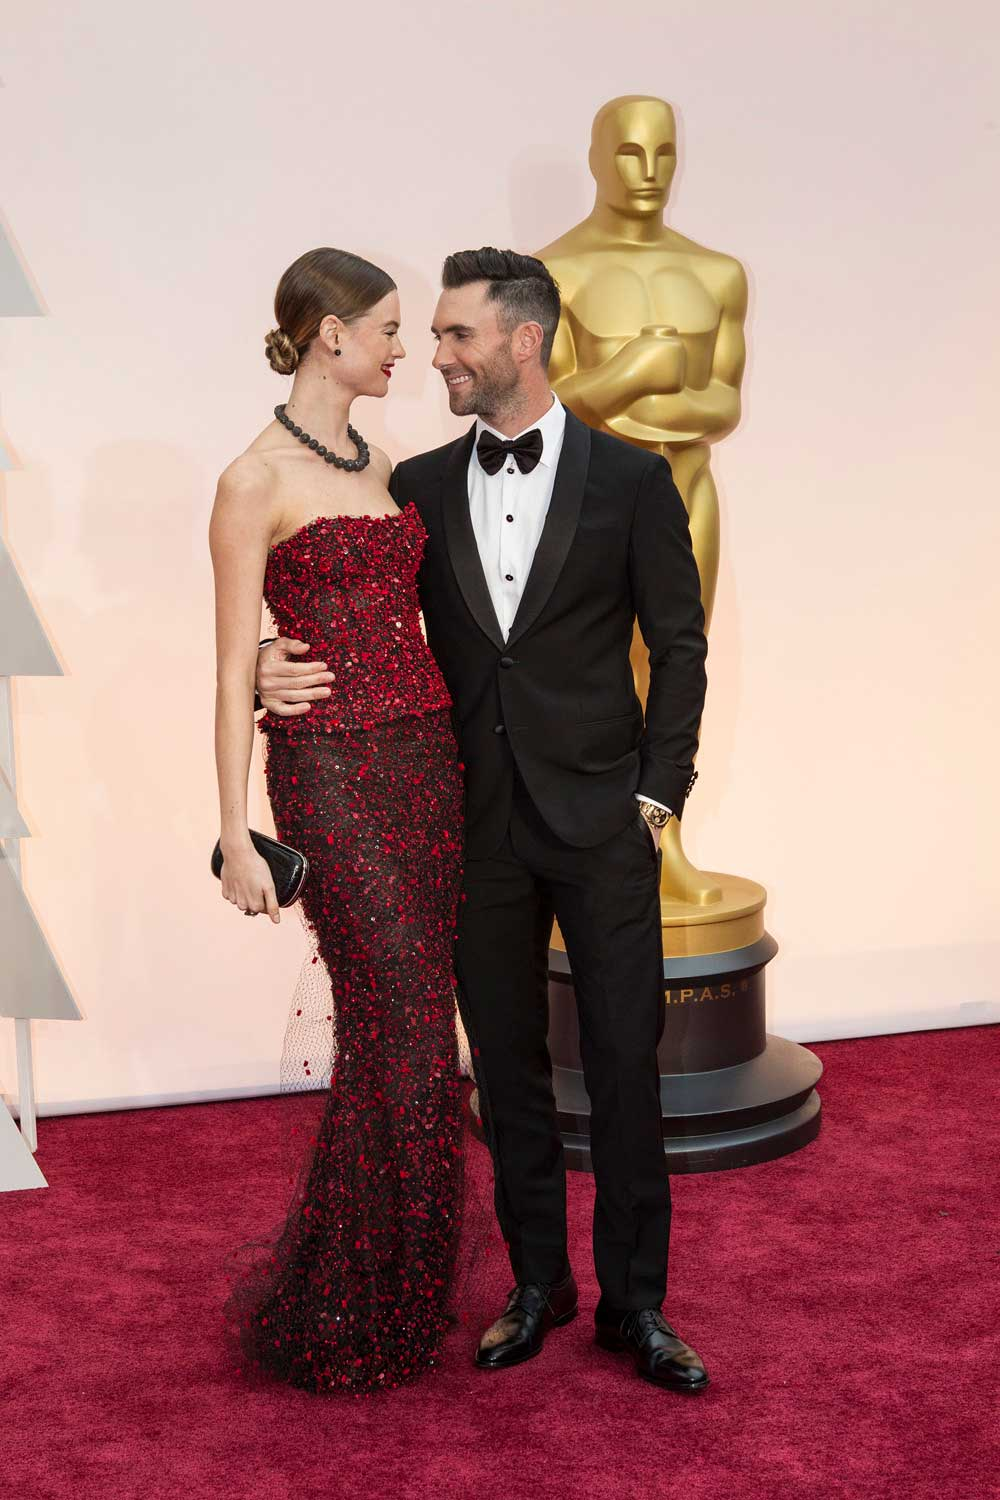 Photo of actors Behati Prinsloo and Adam Levine at the 2015 Oscars.